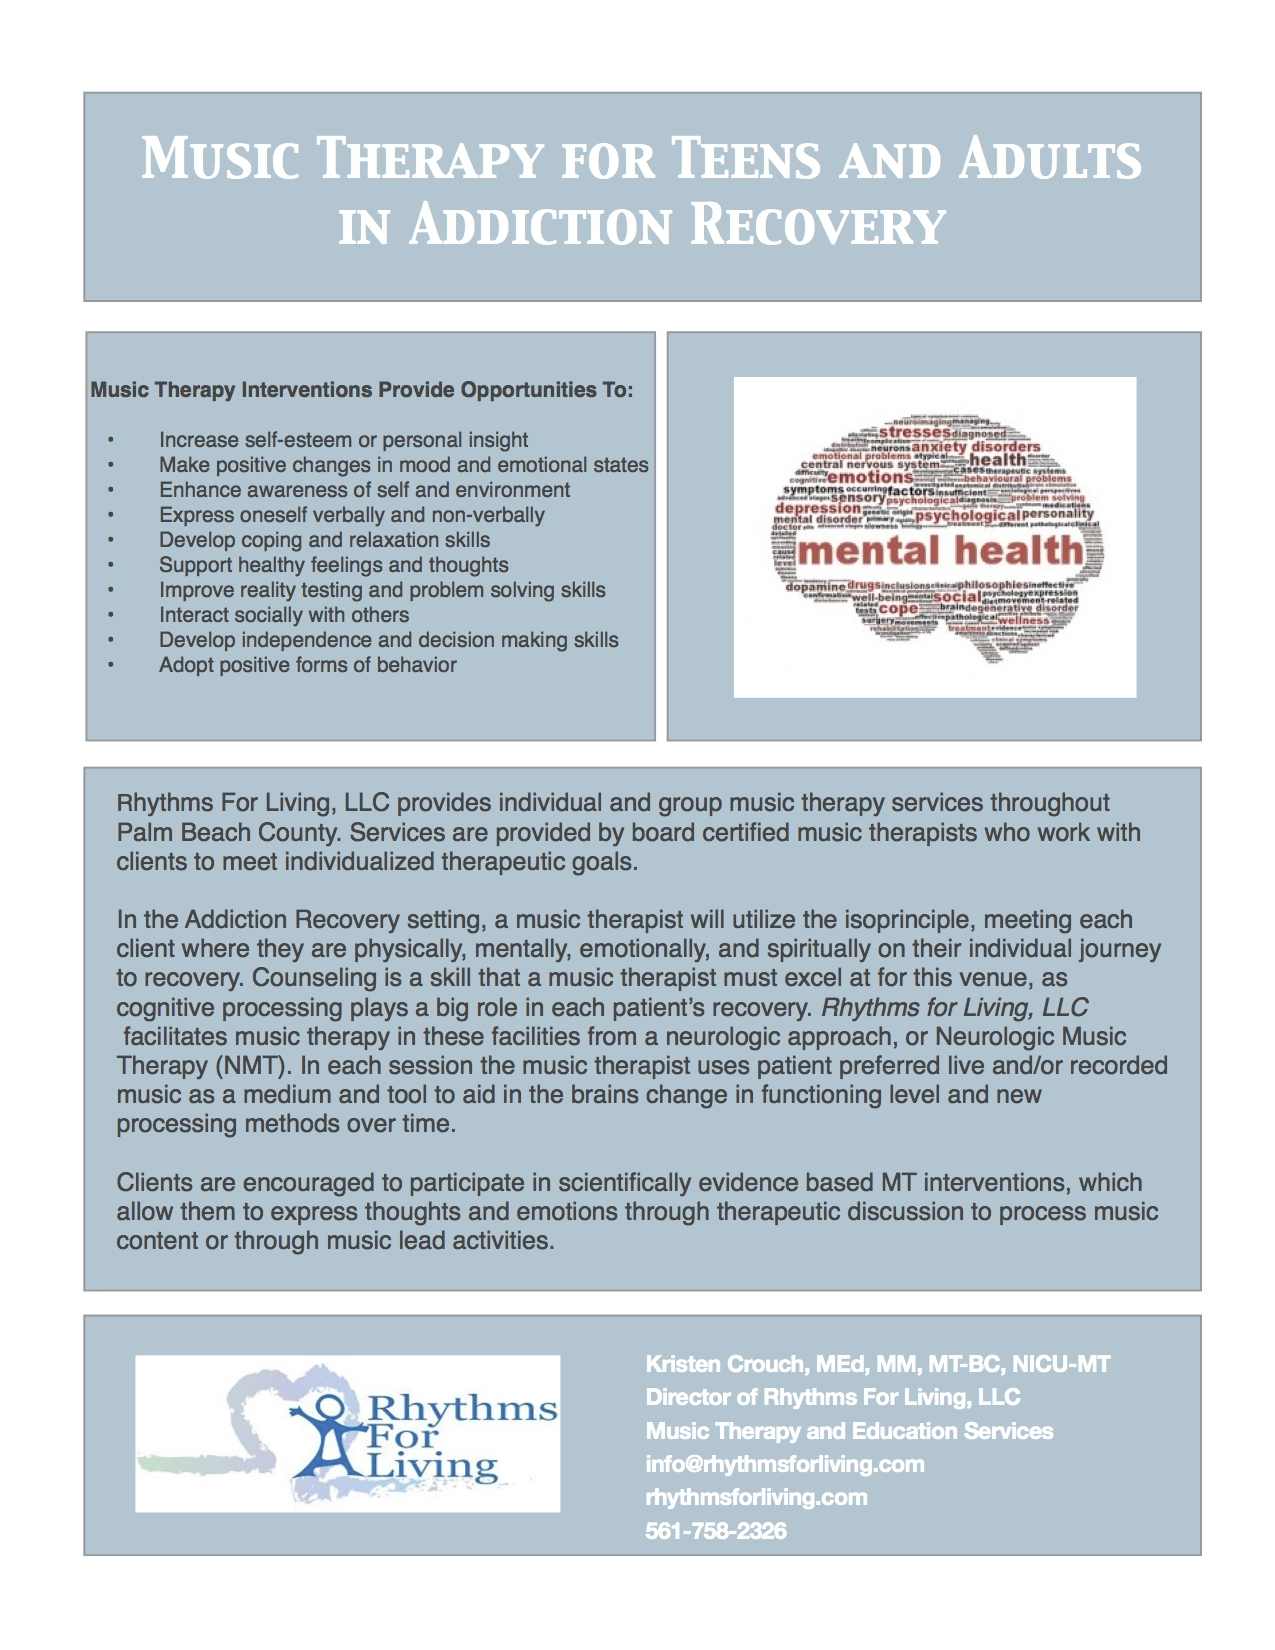 Music Therapy With Substance Abuse